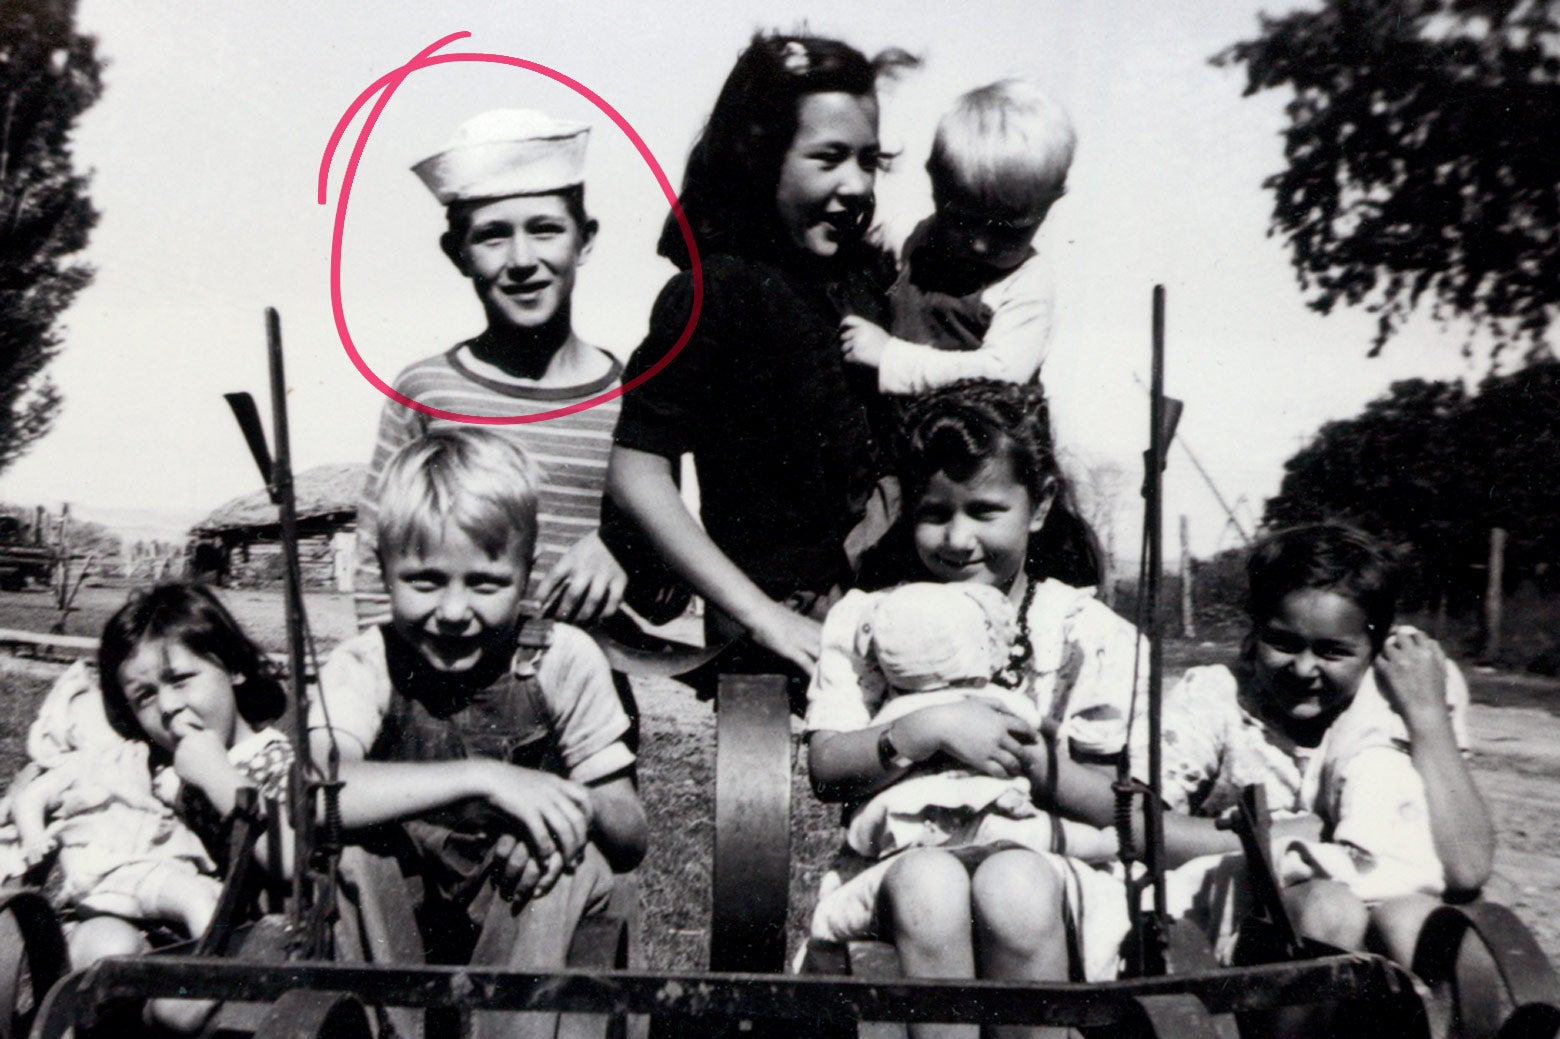 Gary Goodson, in the sailor hat, as a child with some of his siblings, nieces, and nephews.